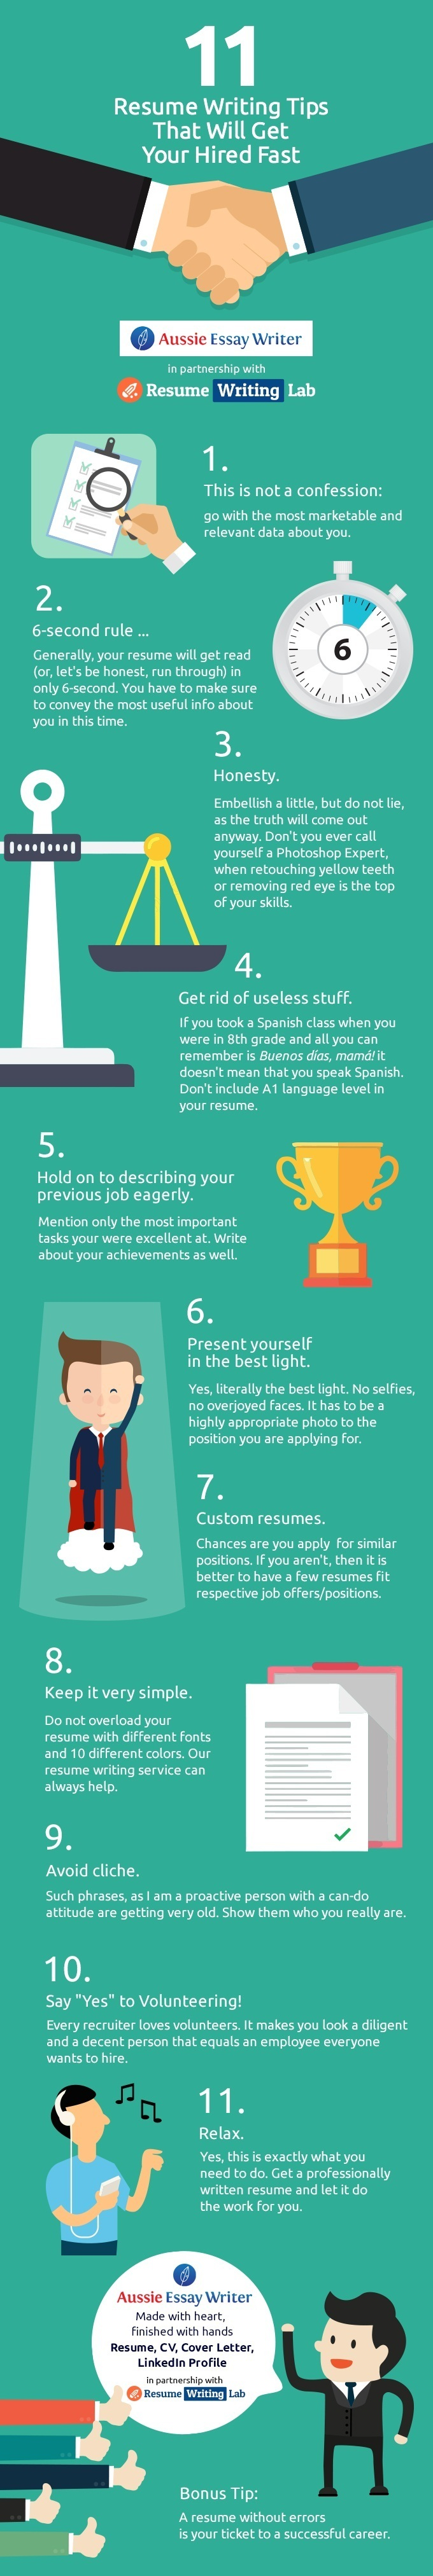 11 resume writing tips that will get you hired fast infographic